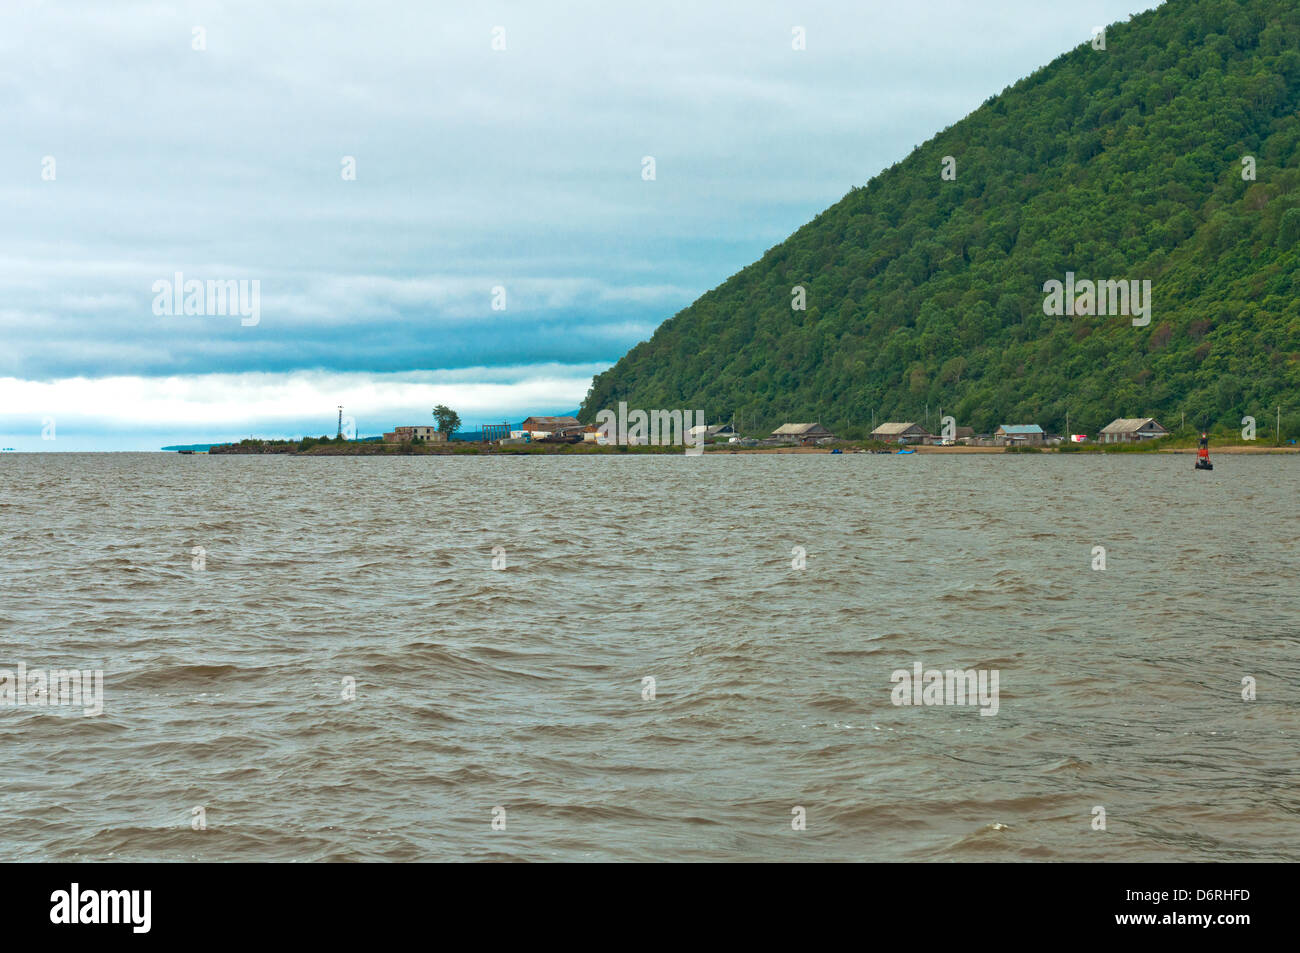 The mighty river Amur 1